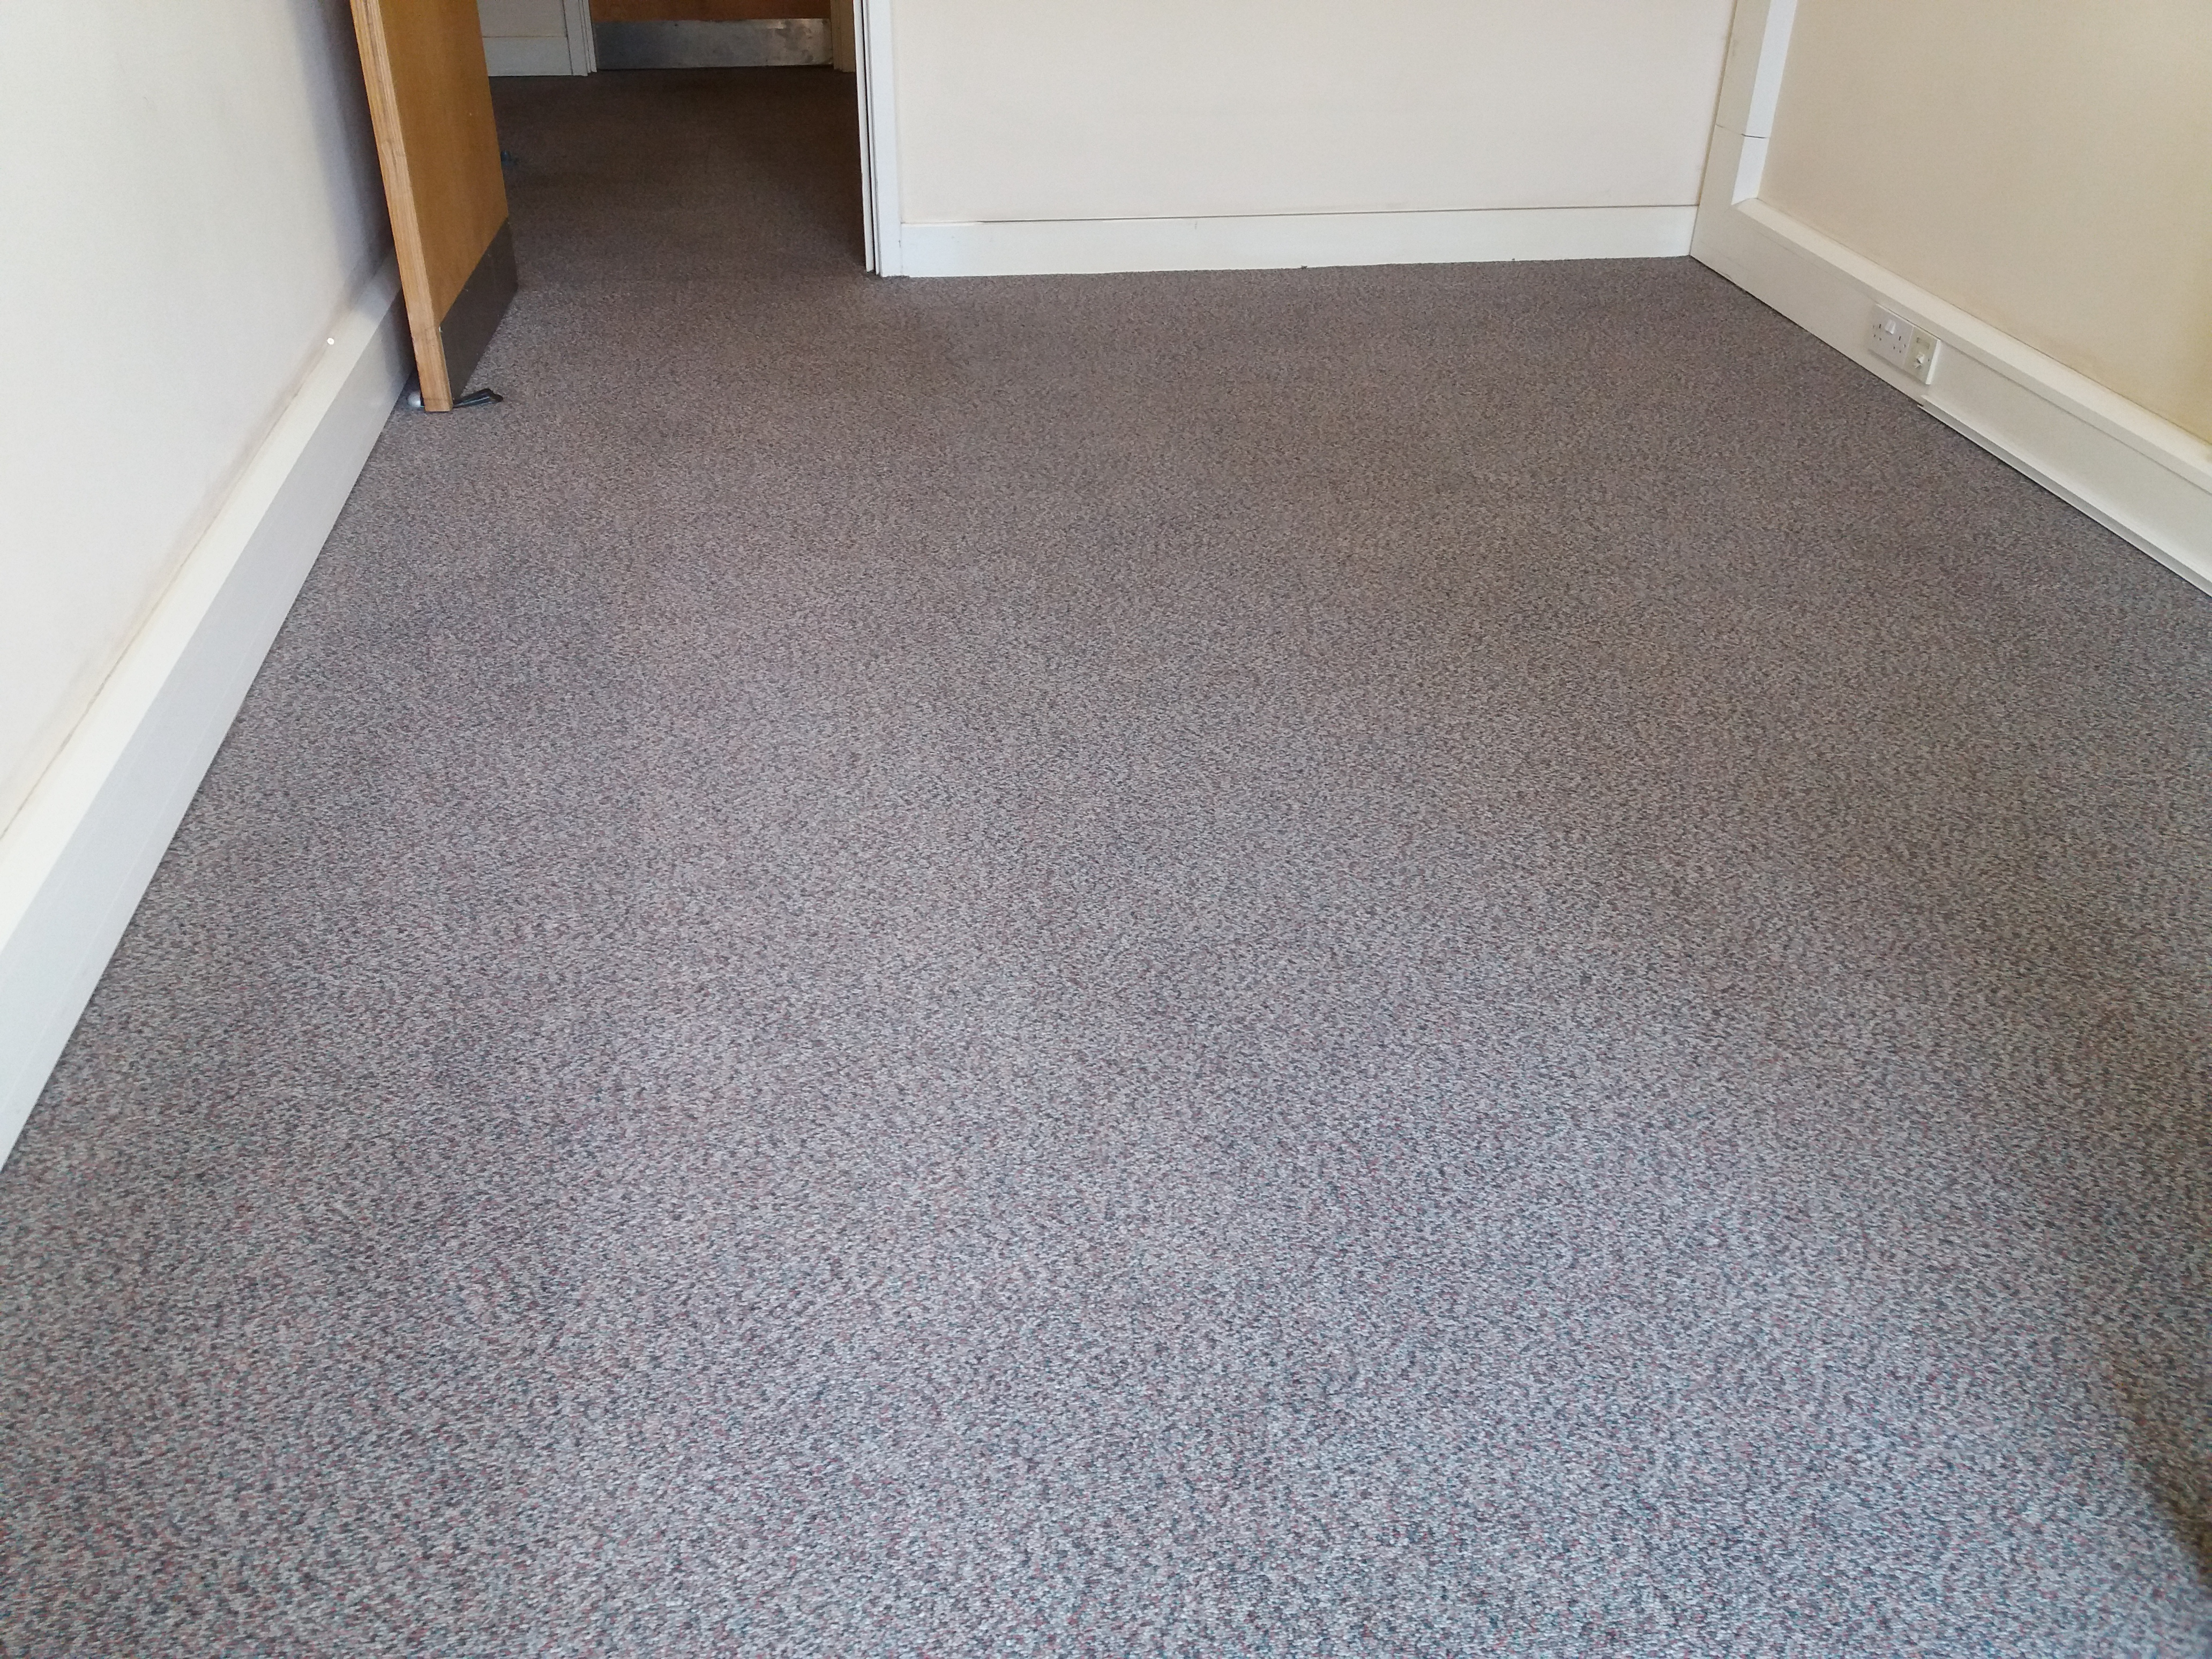 Offices carpet cleaning Oxford